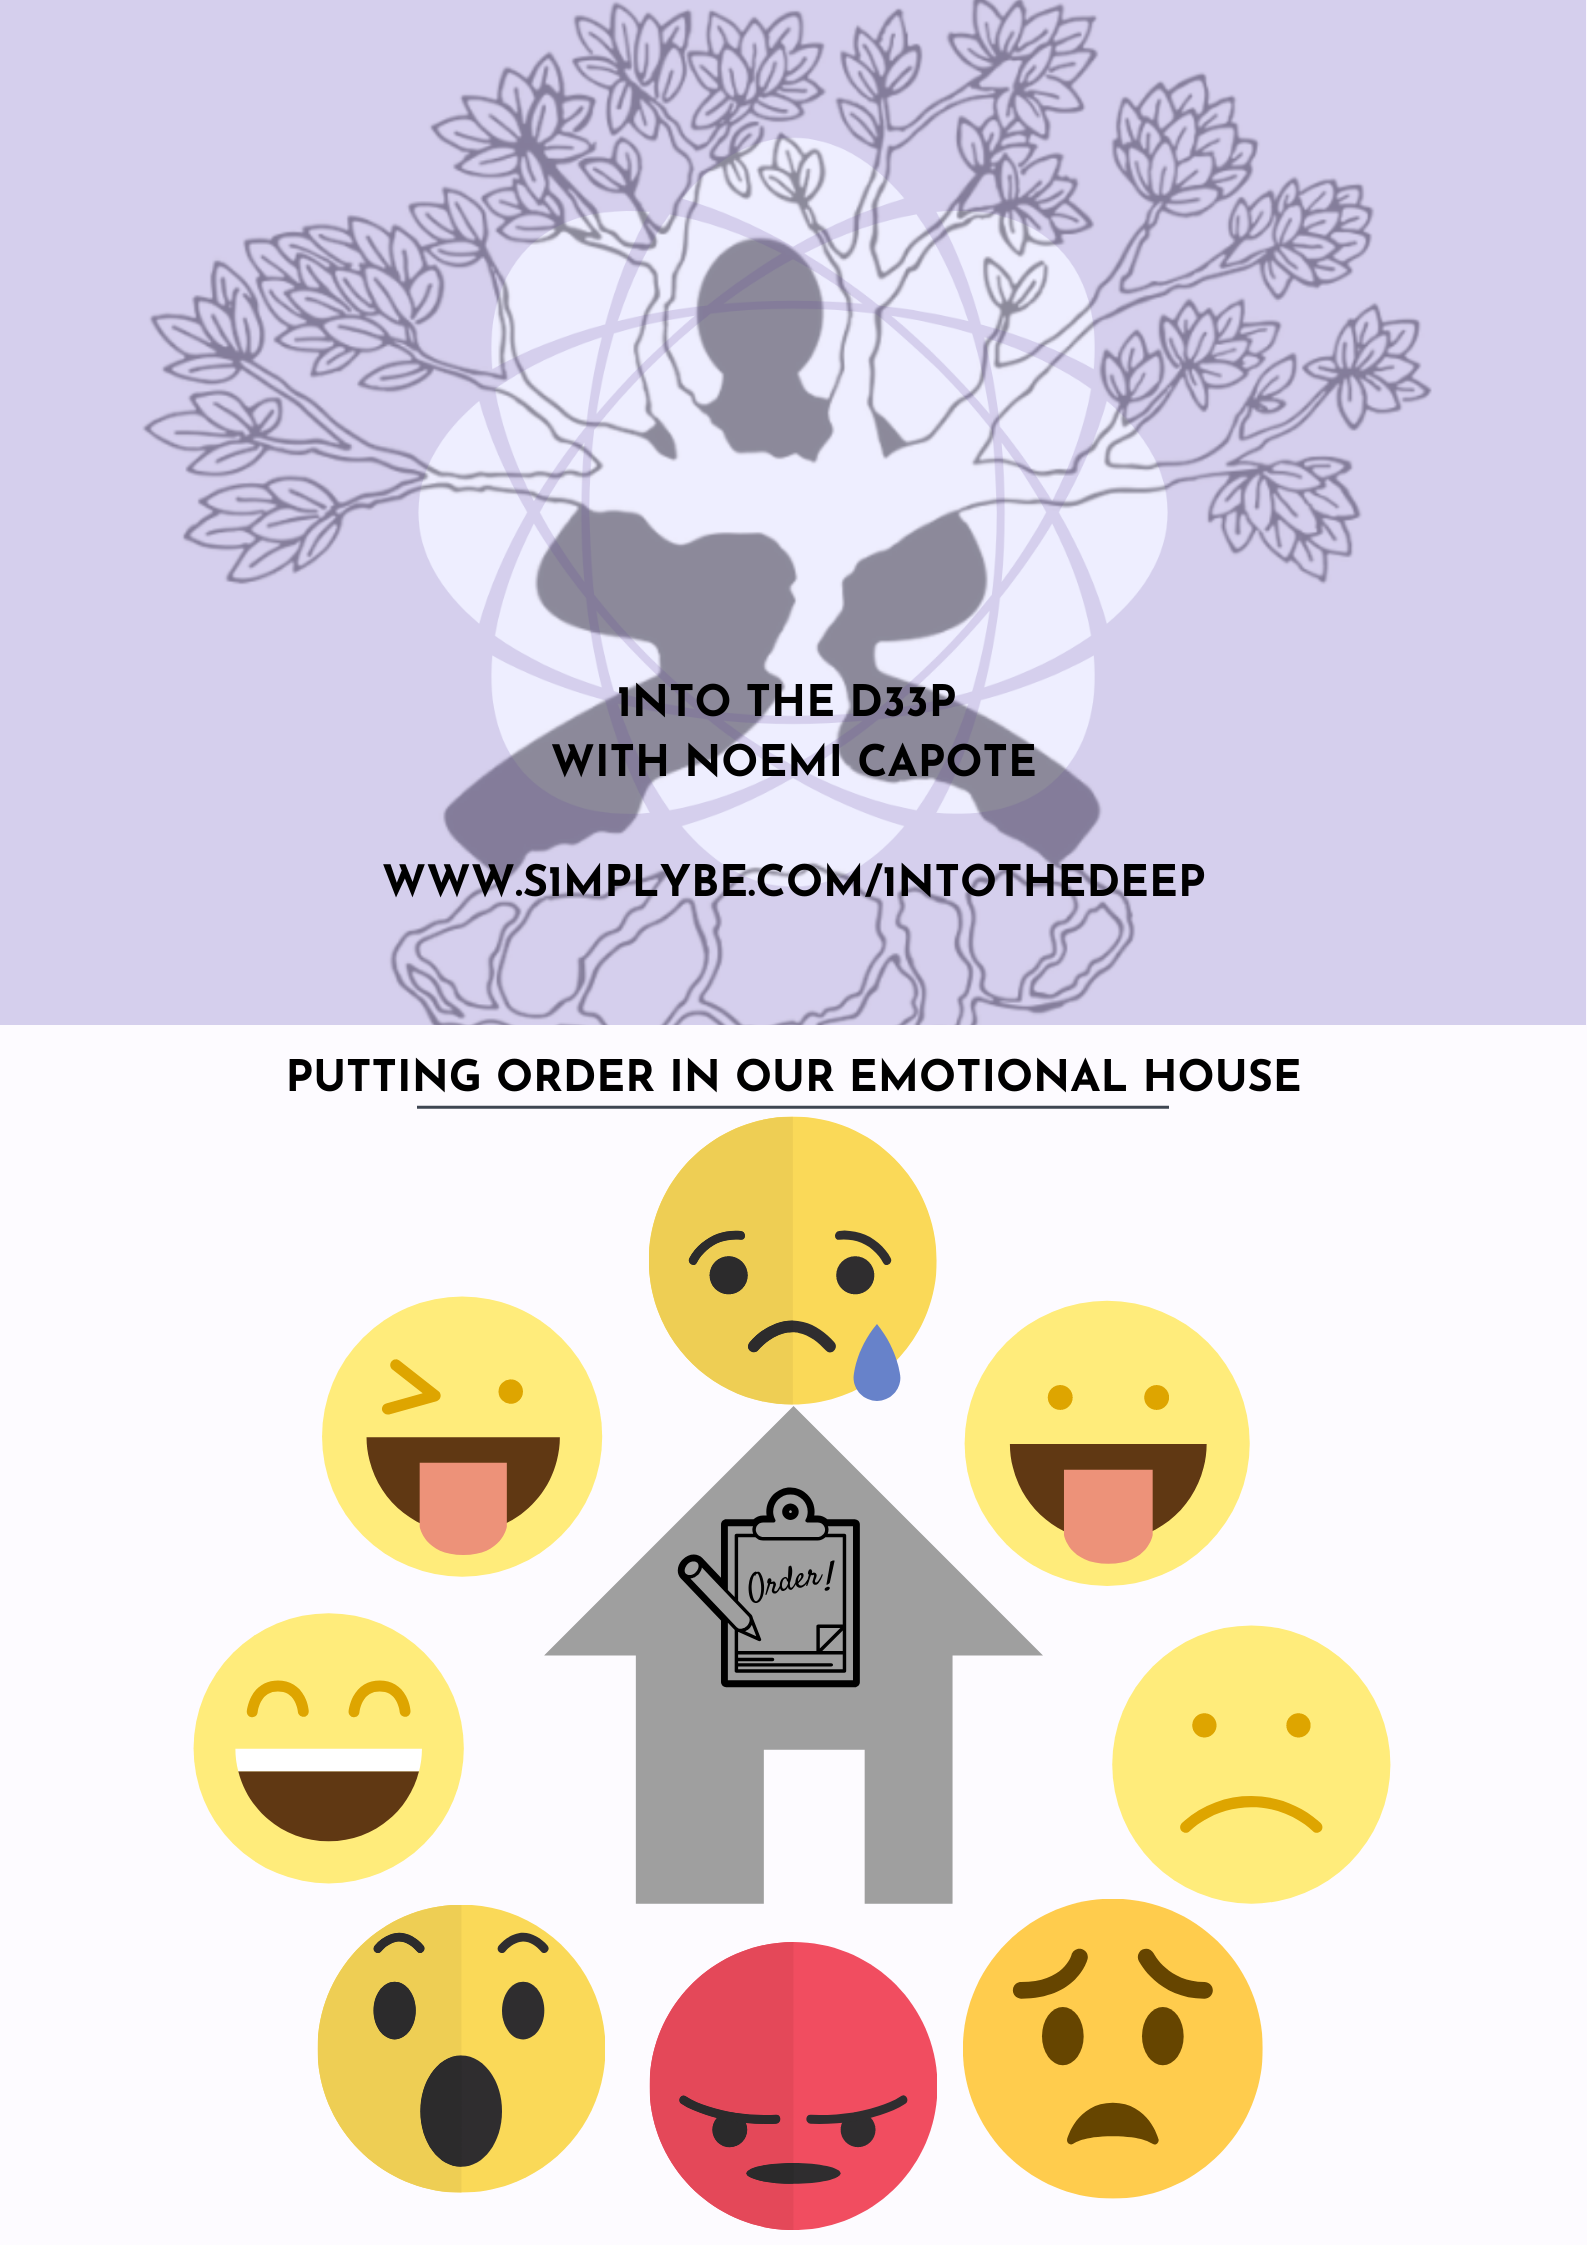 Putting order to our emotional house.